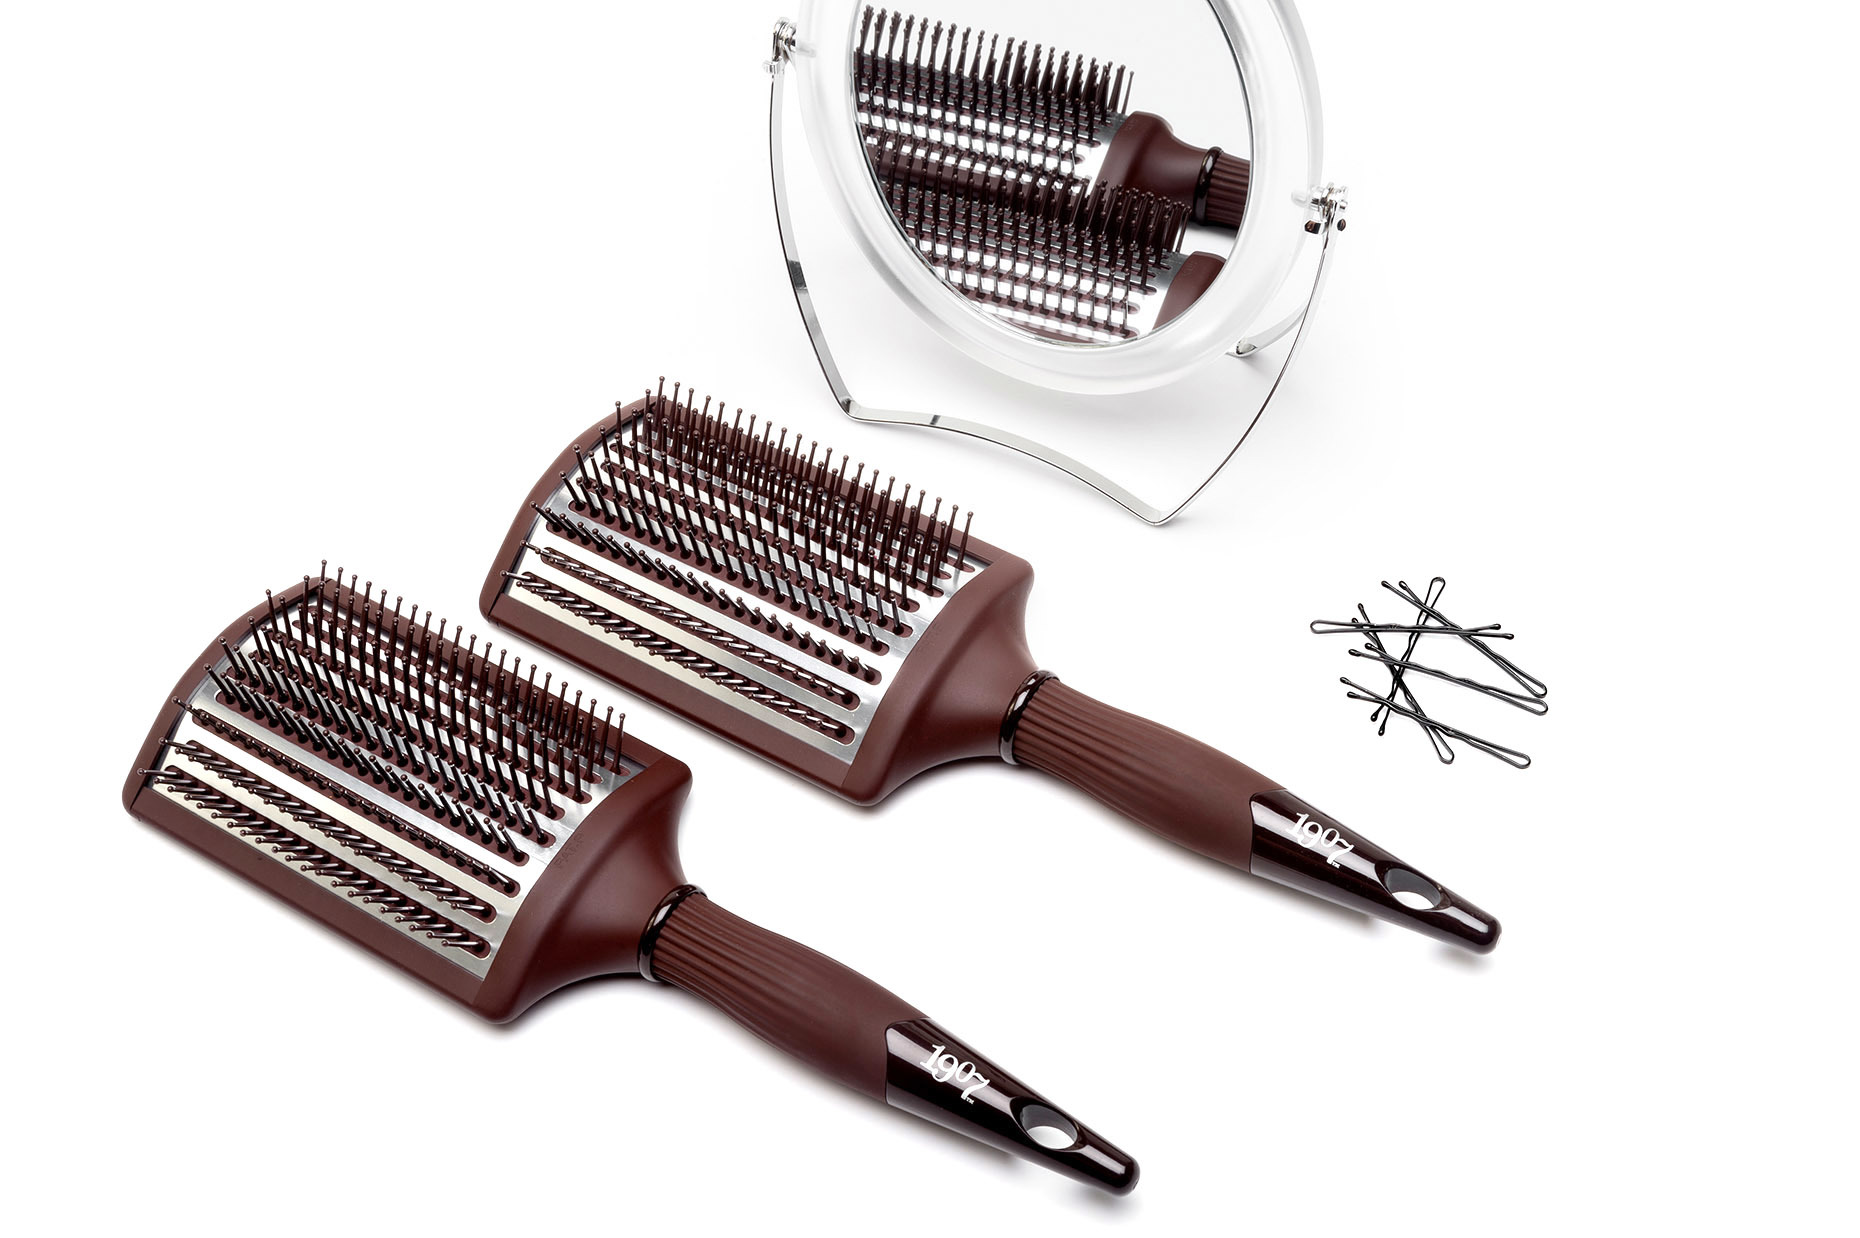 FROMM_1907_Beauty-Products_Metal-Brush_RHanelPhotography